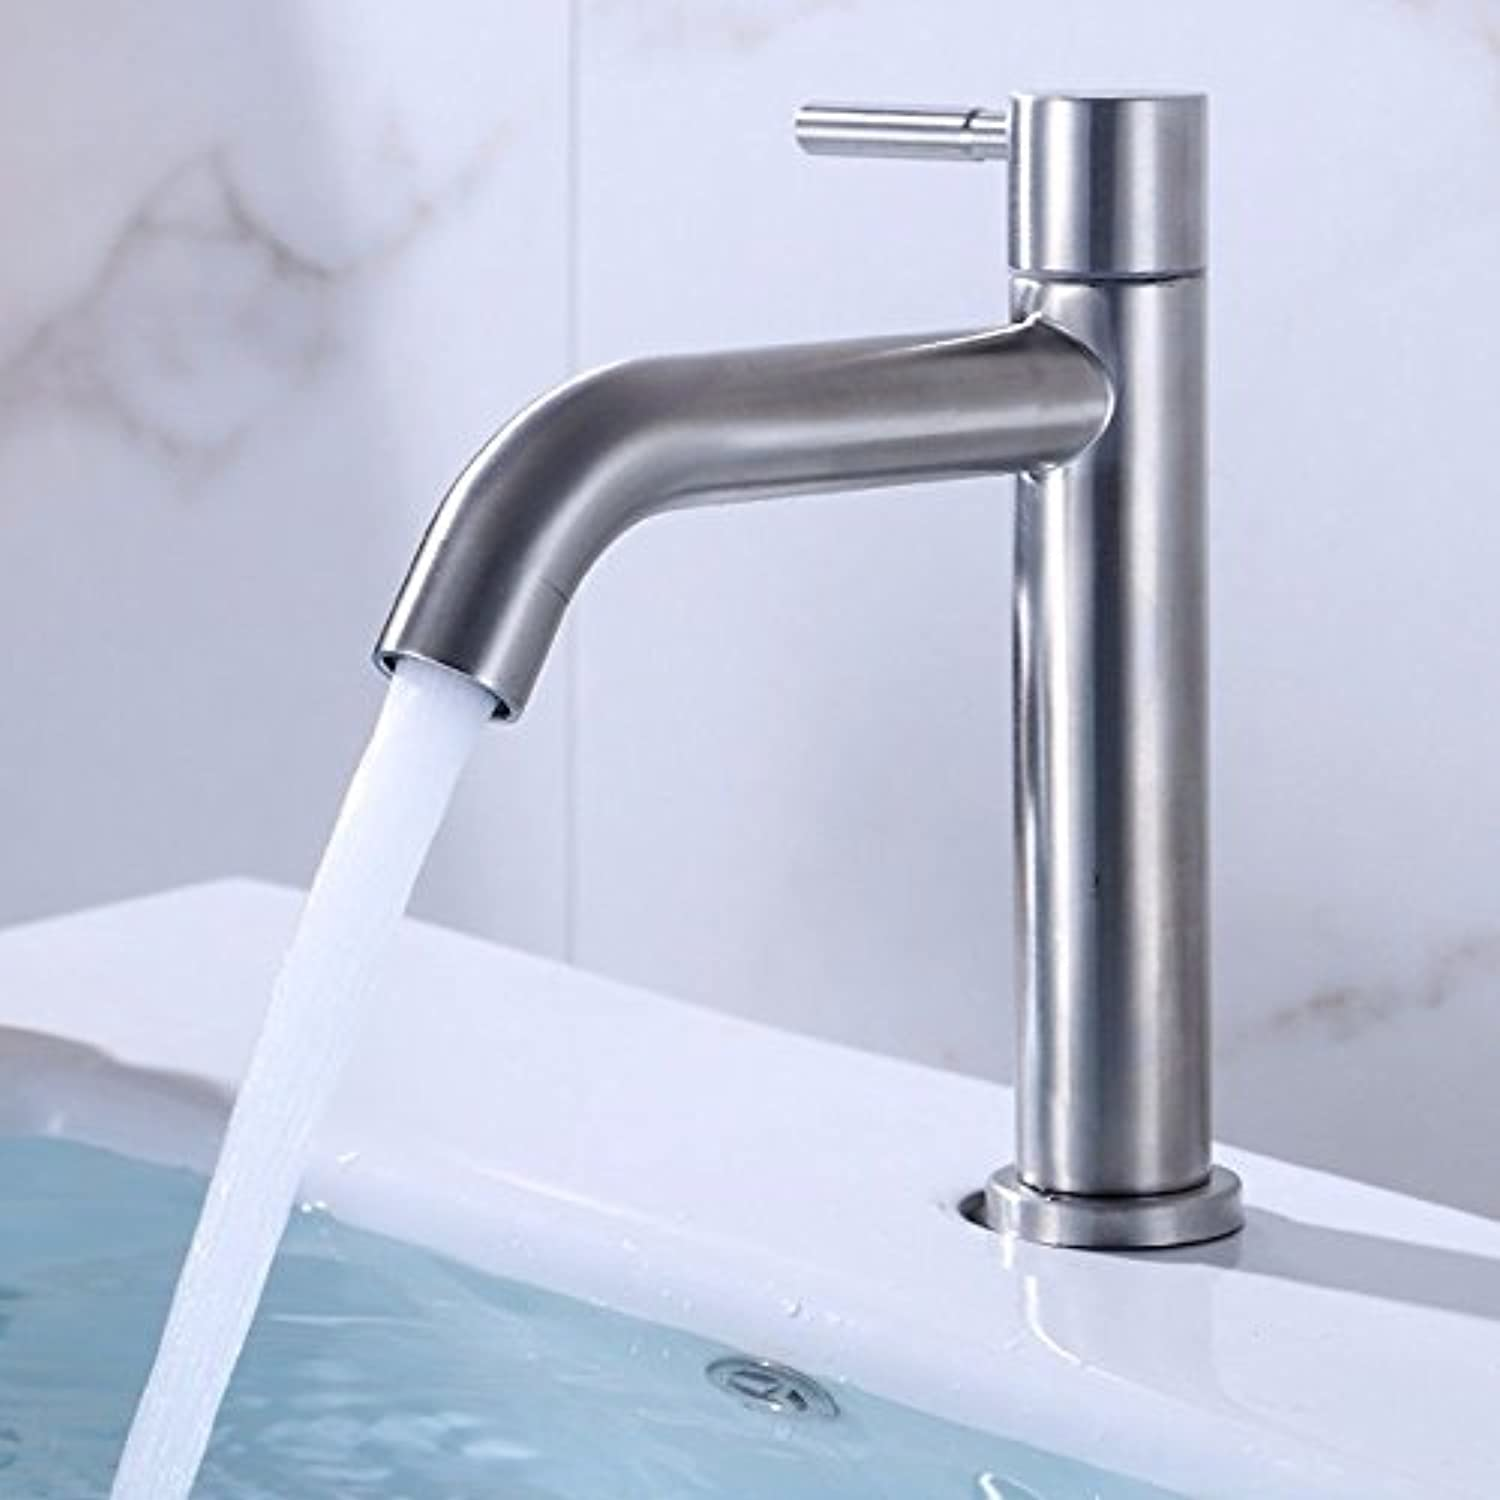 Lalaky Taps Faucet Kitchen Mixer Sink Waterfall Bathroom Mixer Basin Mixer Tap for Kitchen Bathroom and Washroom 304 Stainless Steel Single Cold